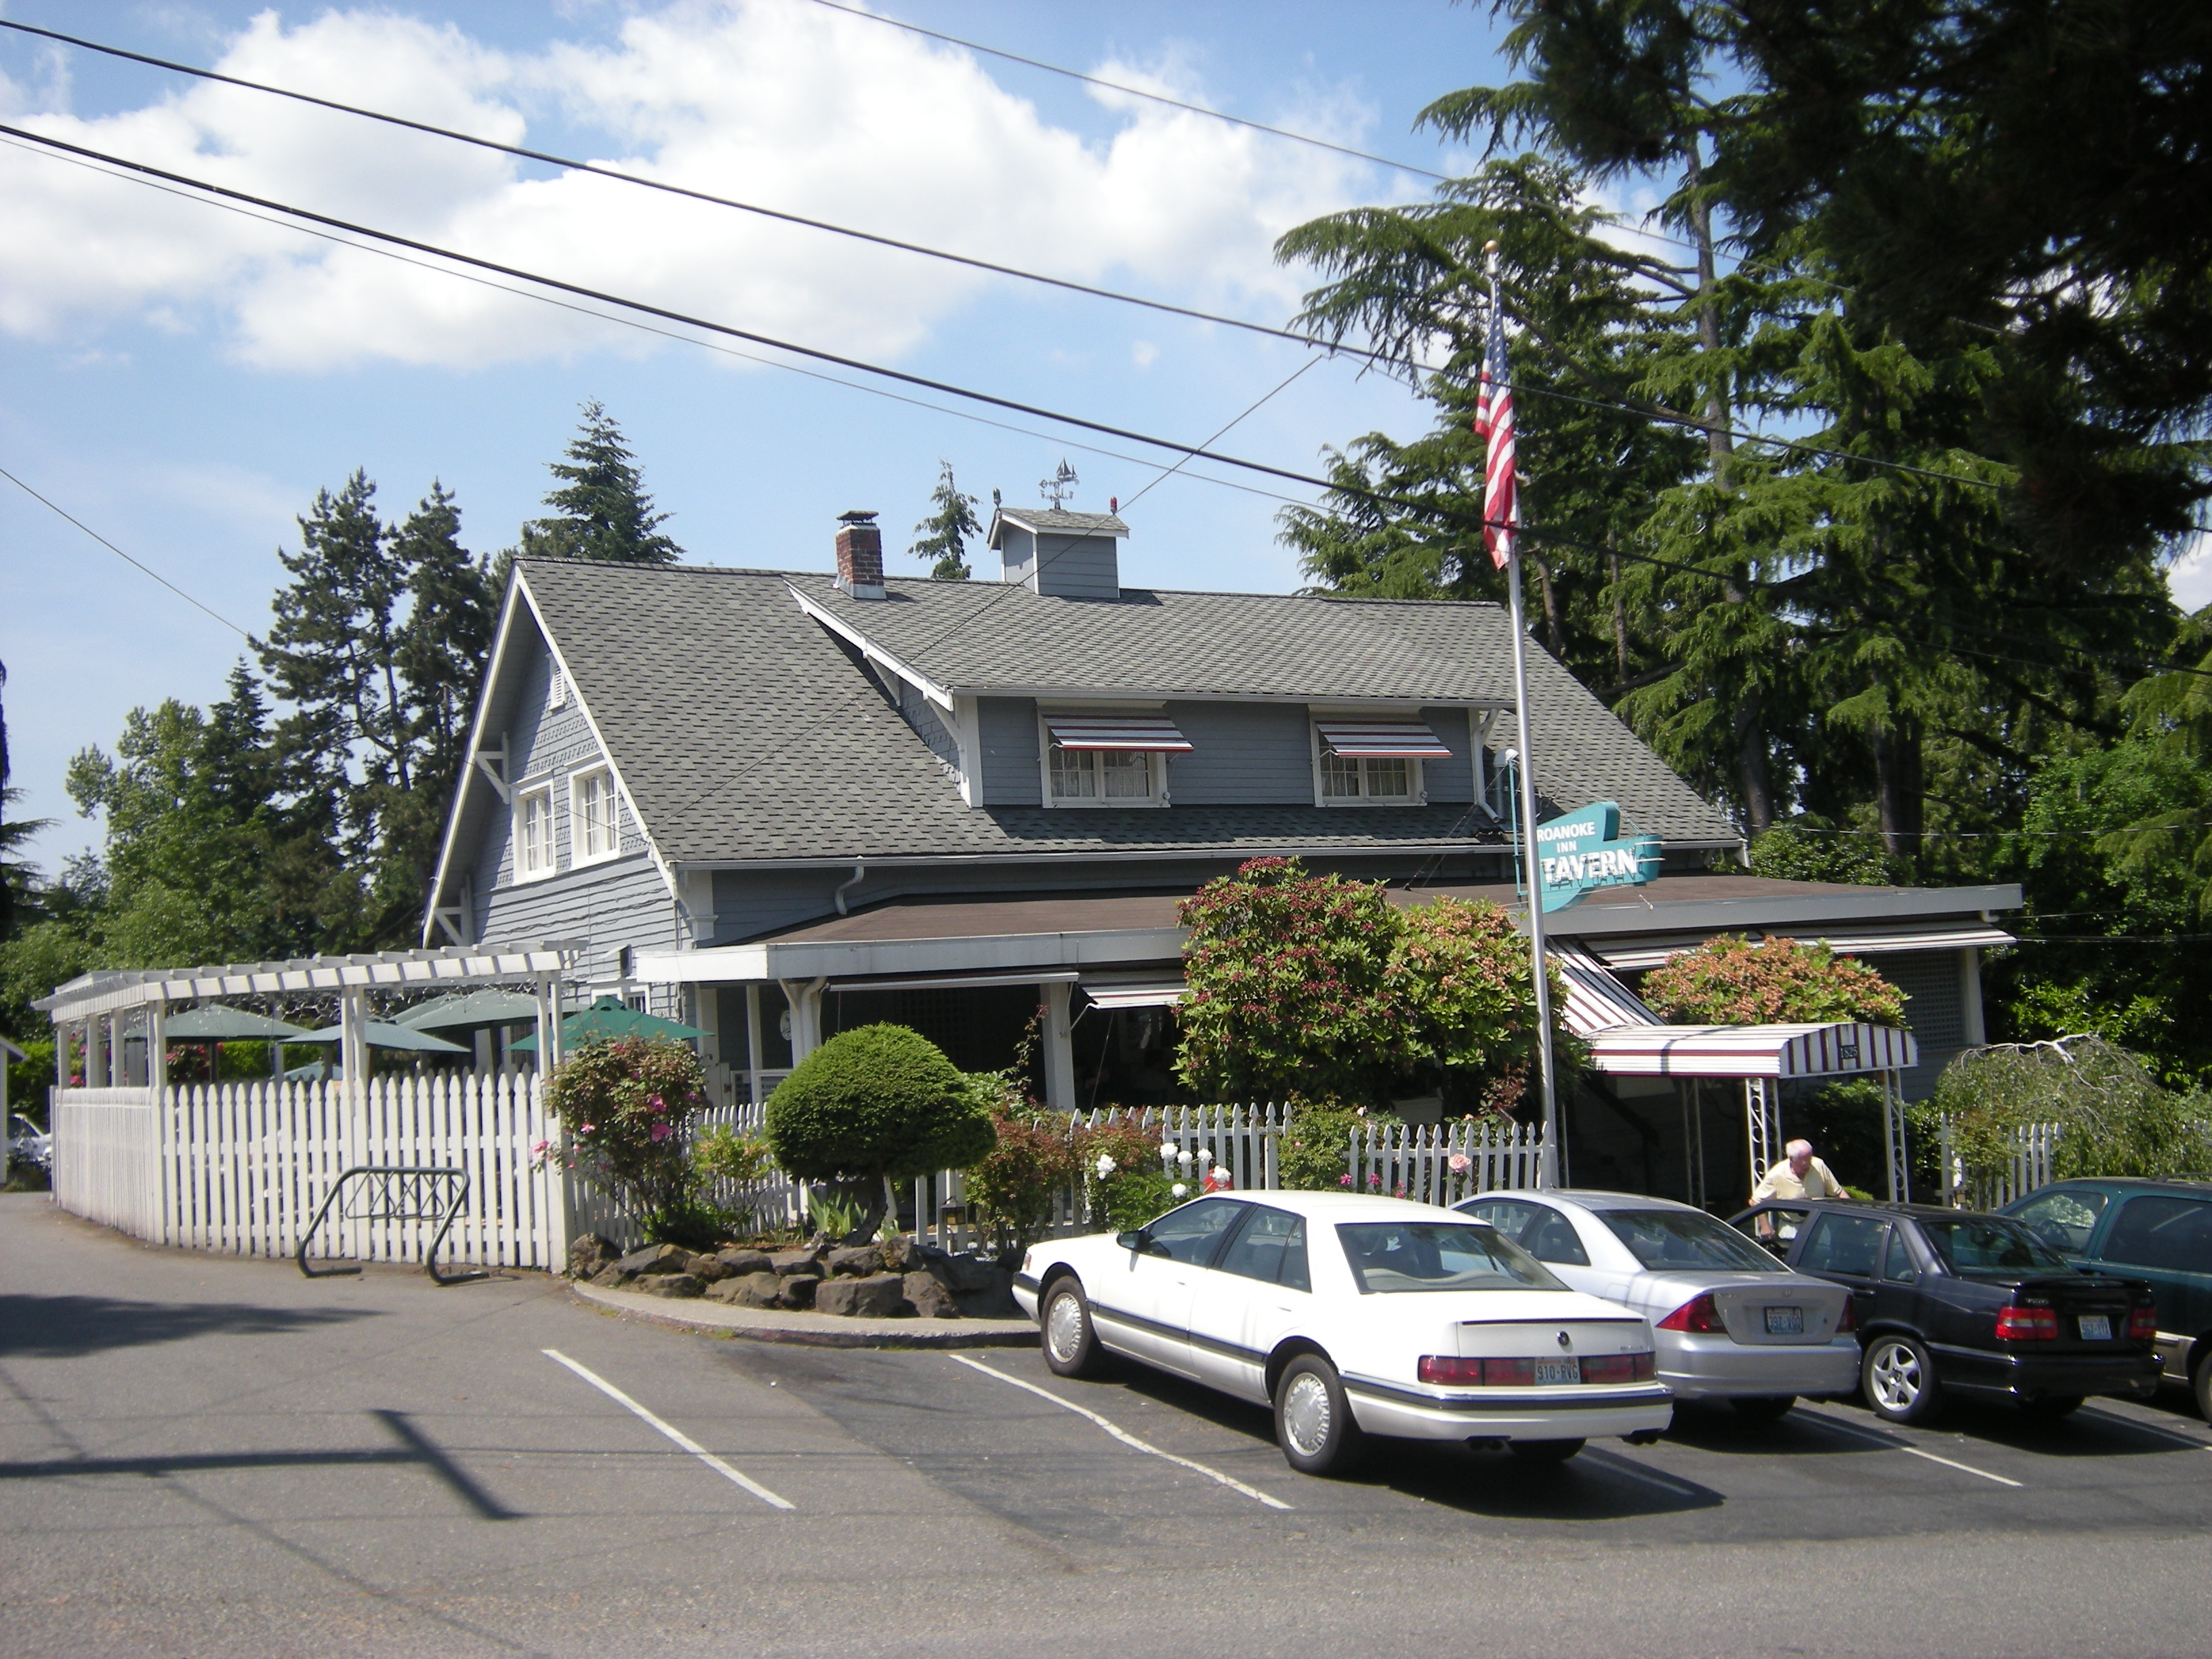 File Mercer Island Wa Roanoke Inn 01 Jpg Wikimedia Commons